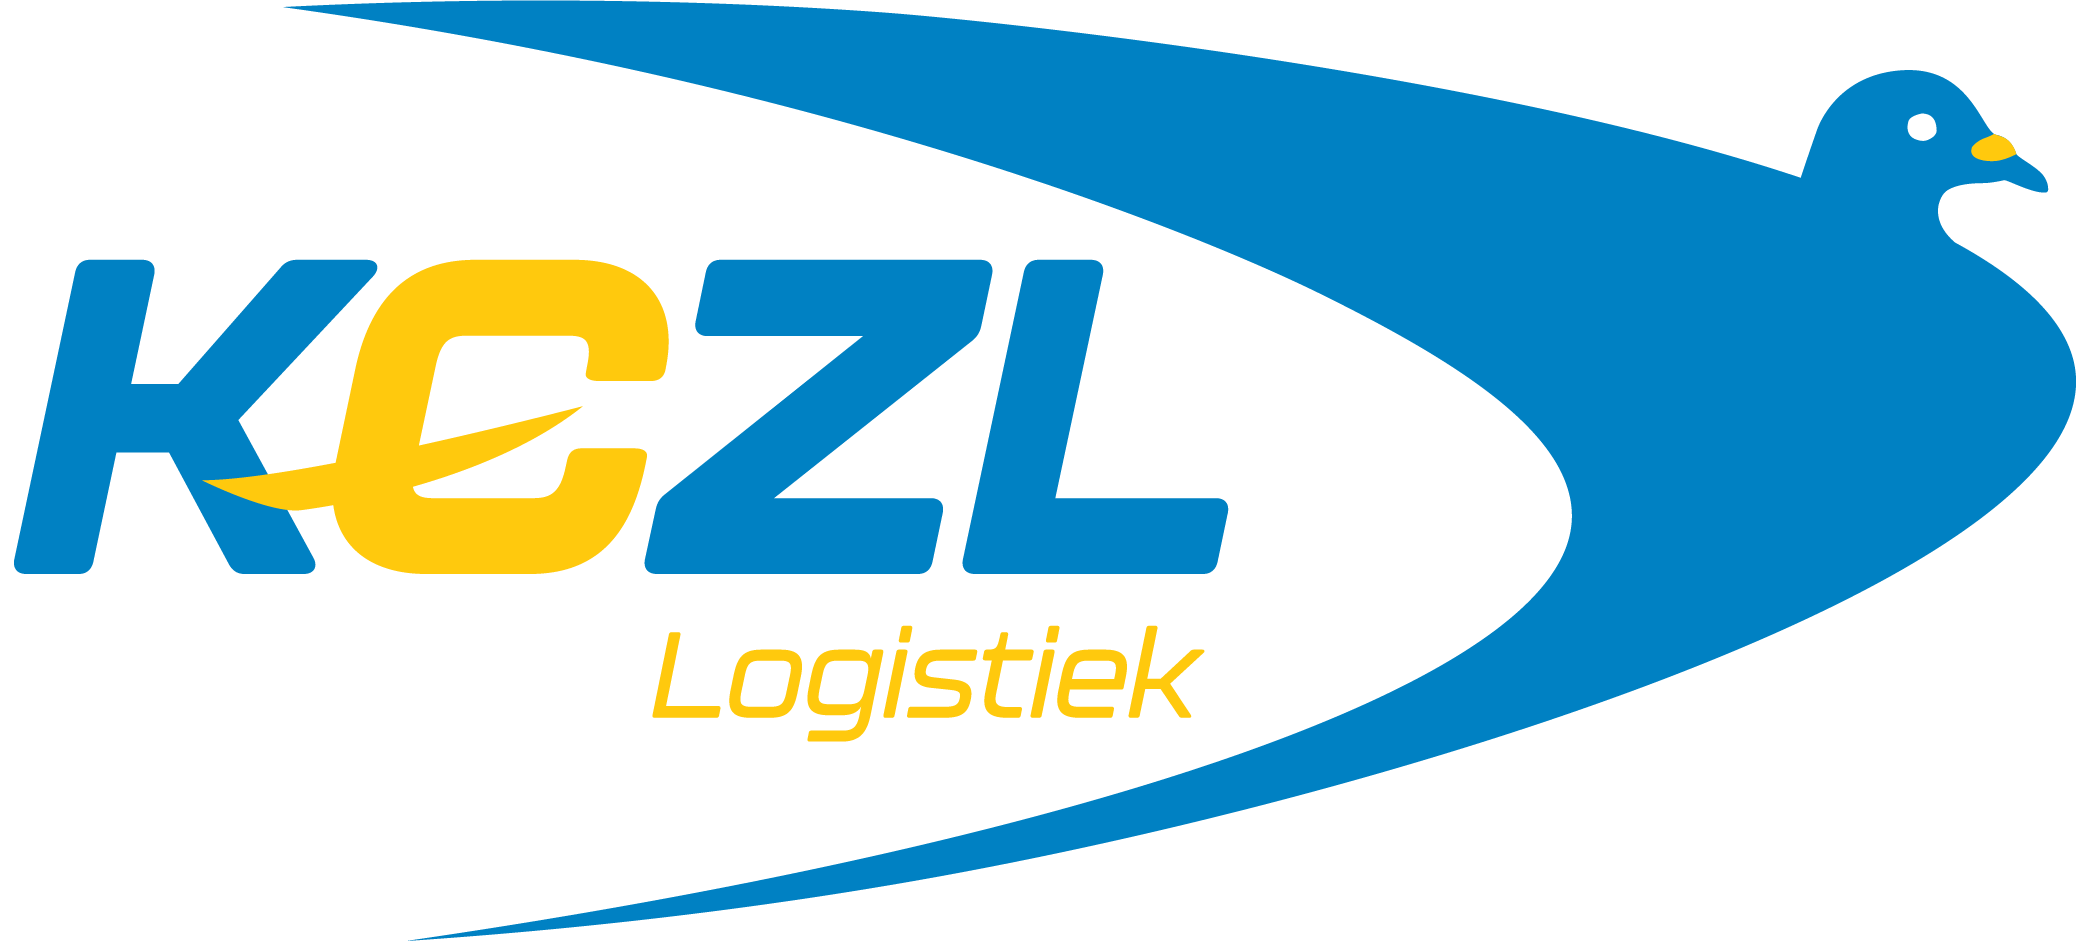 KCZL Transport & Logistiek